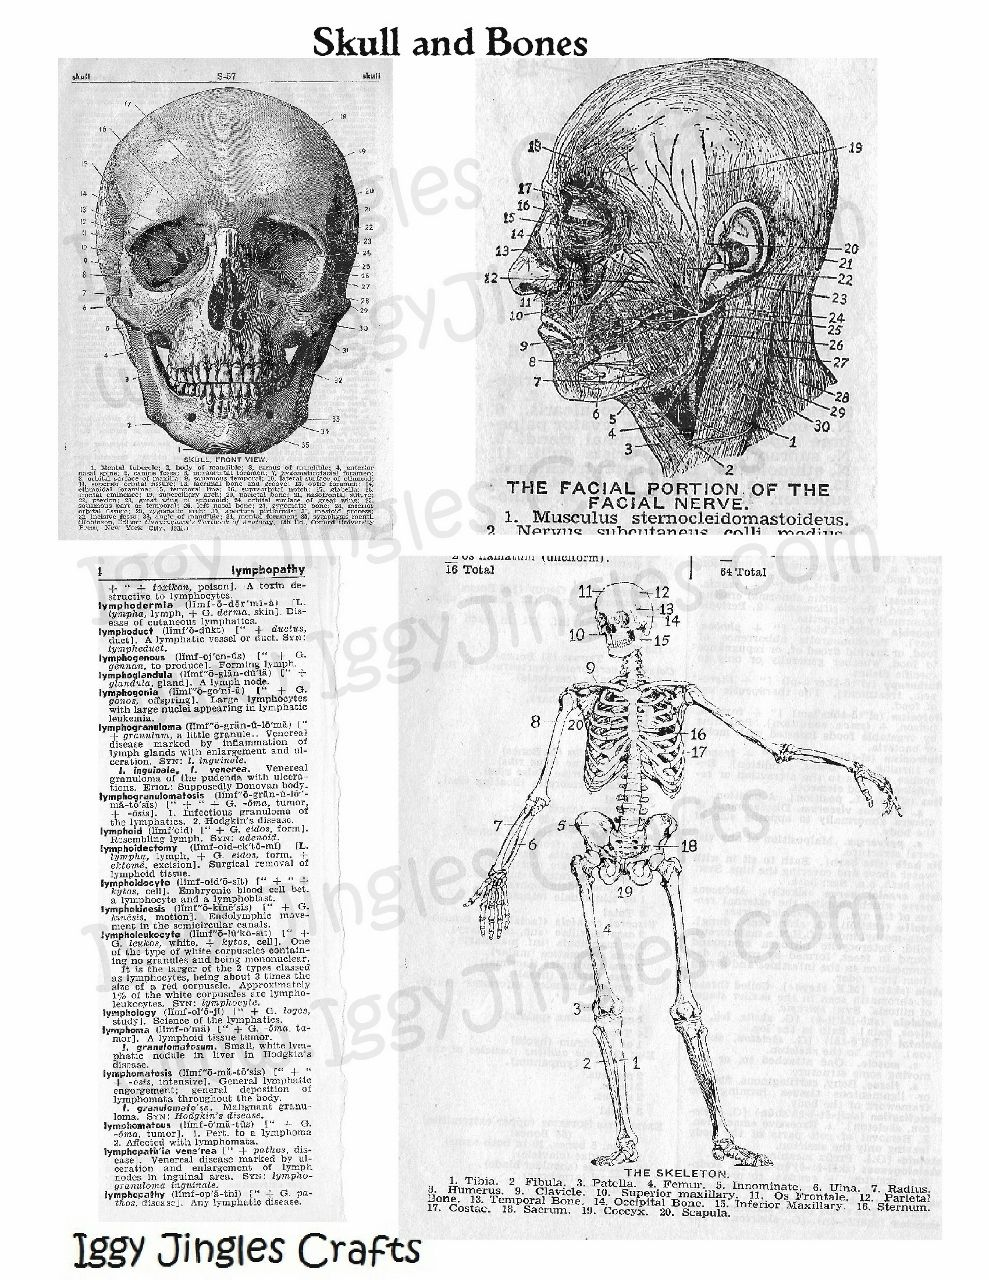 Skull and Bones Vintage Image collage sheet in Black and White